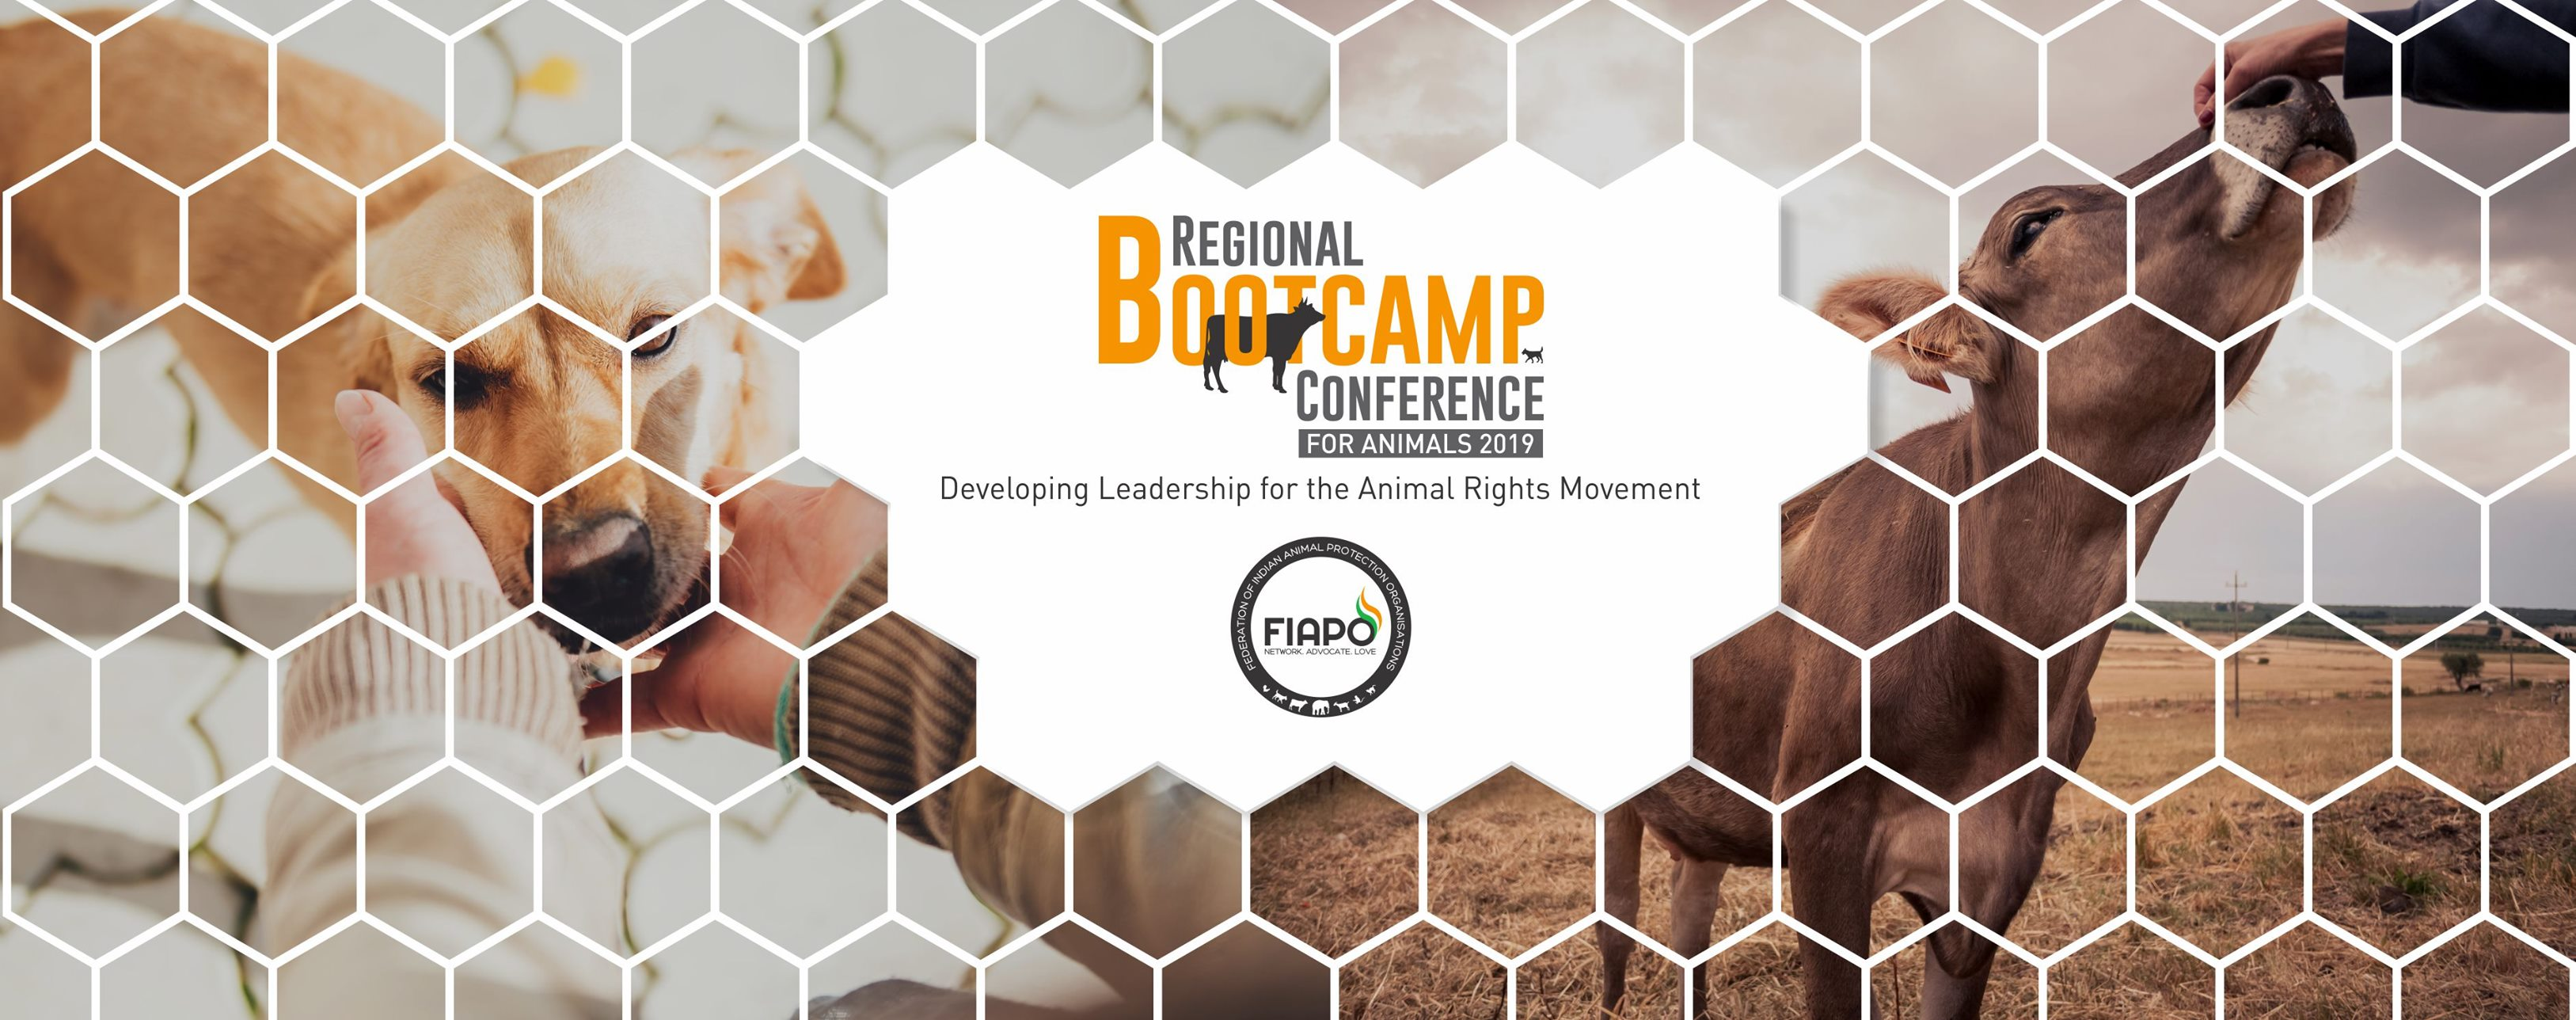 Regional Bootcamp Conference For Animals 2019